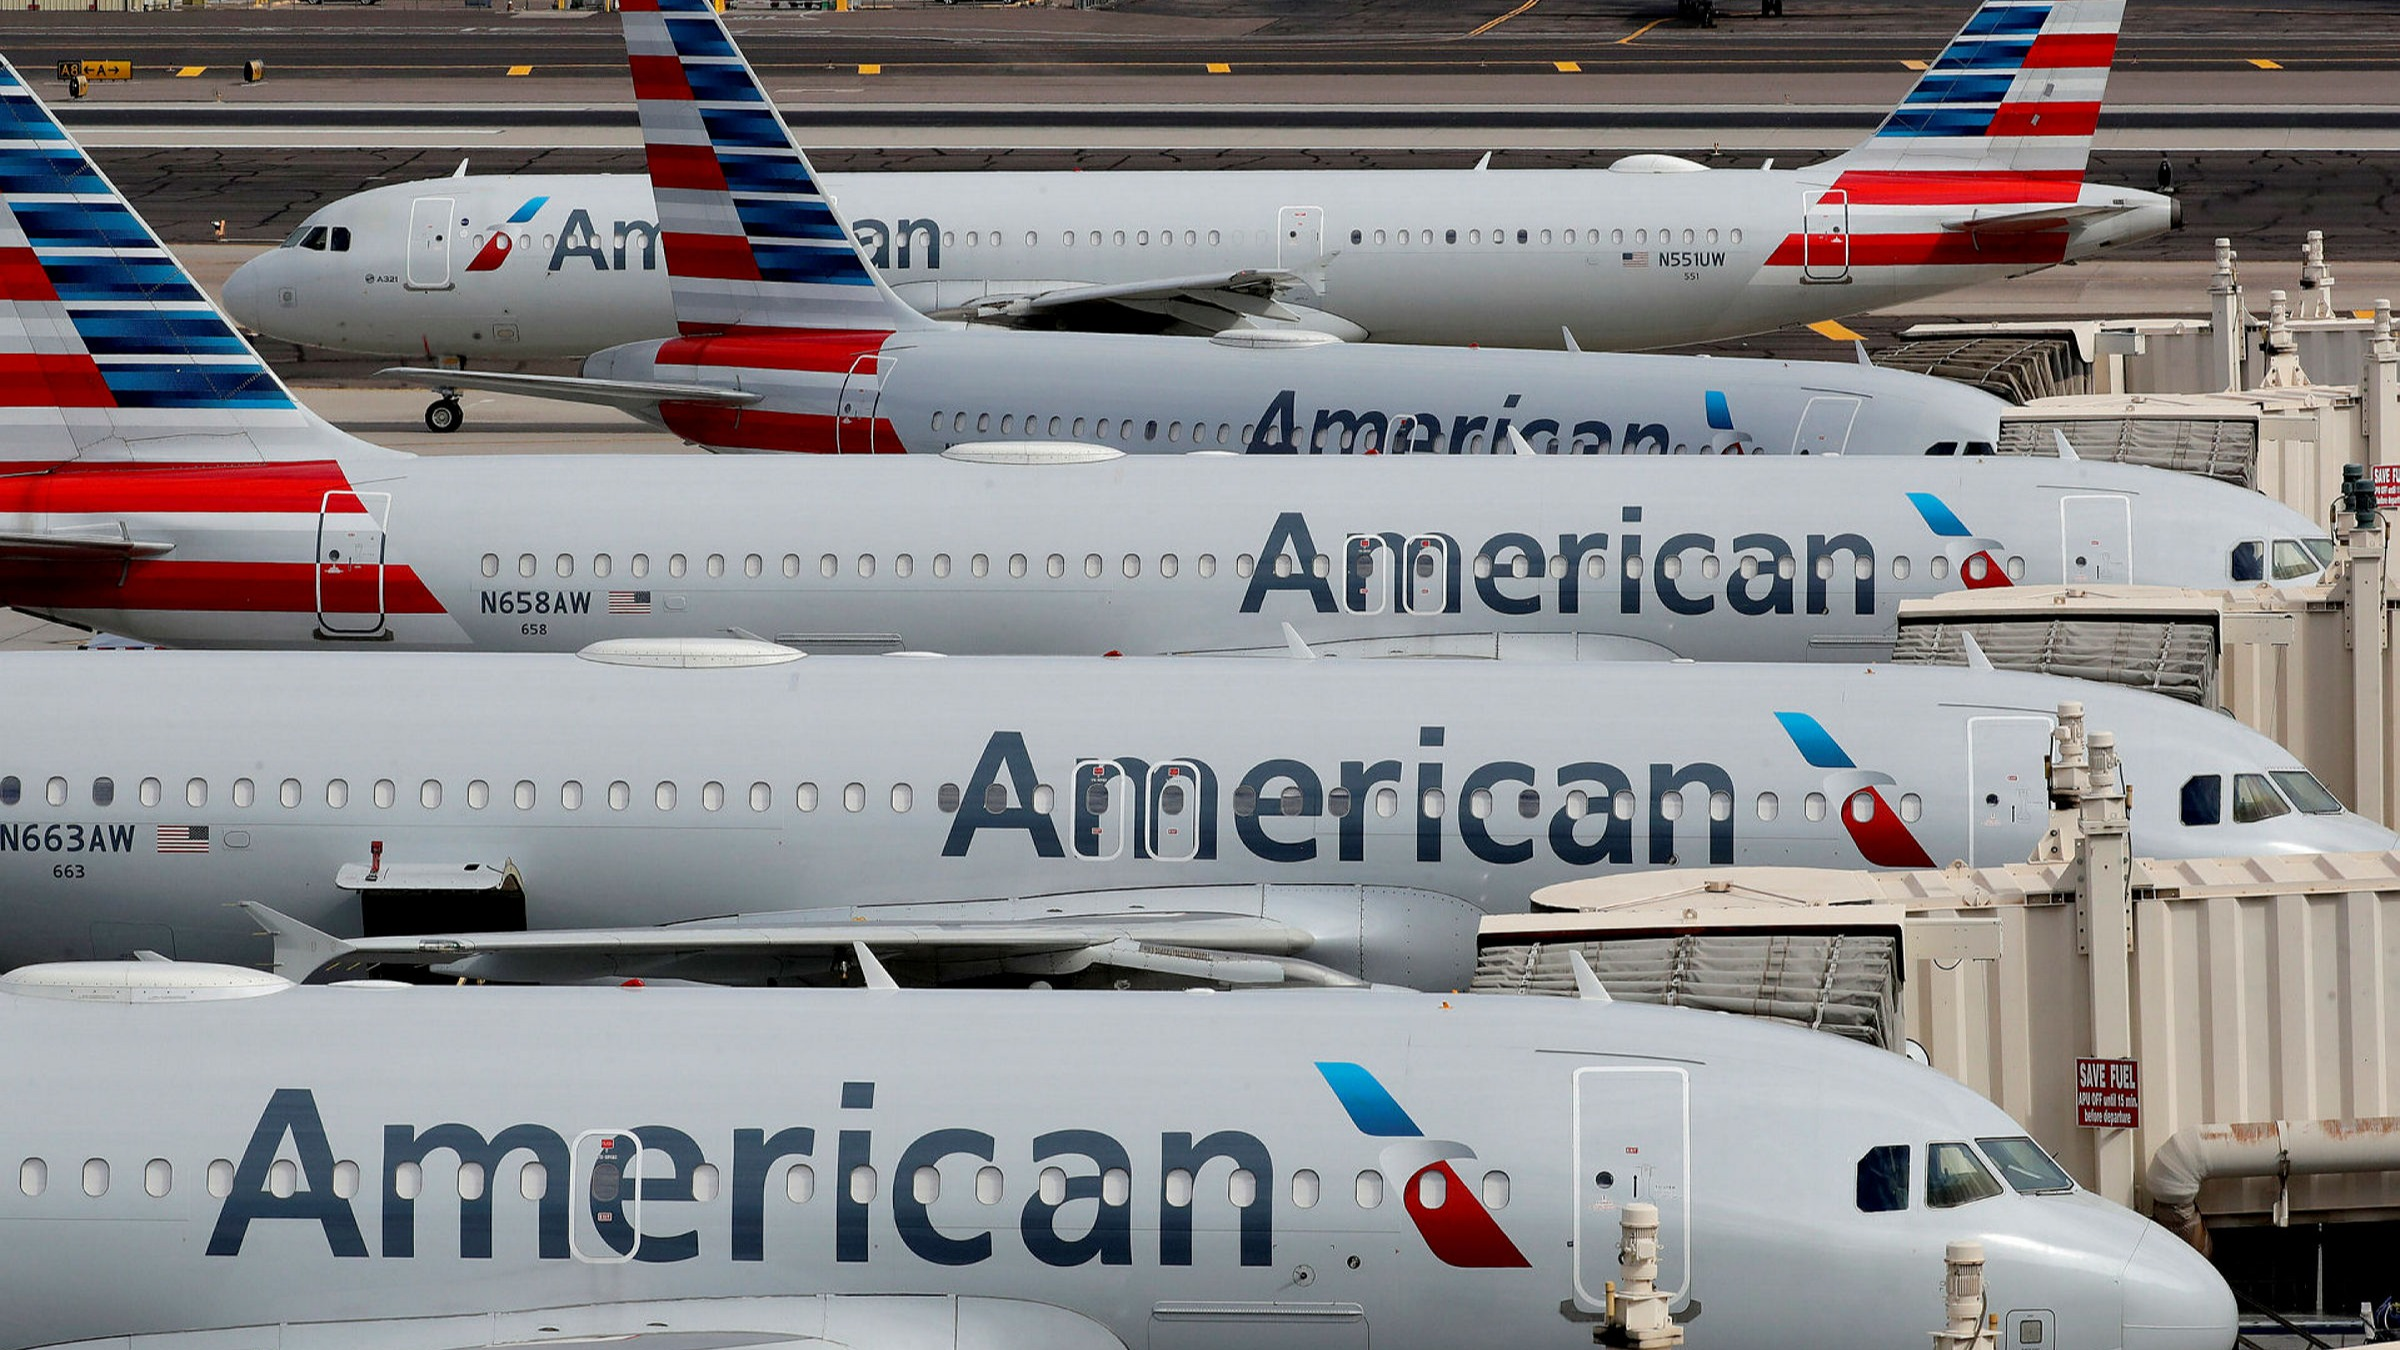 American Airlines Best First and Business Class Areas